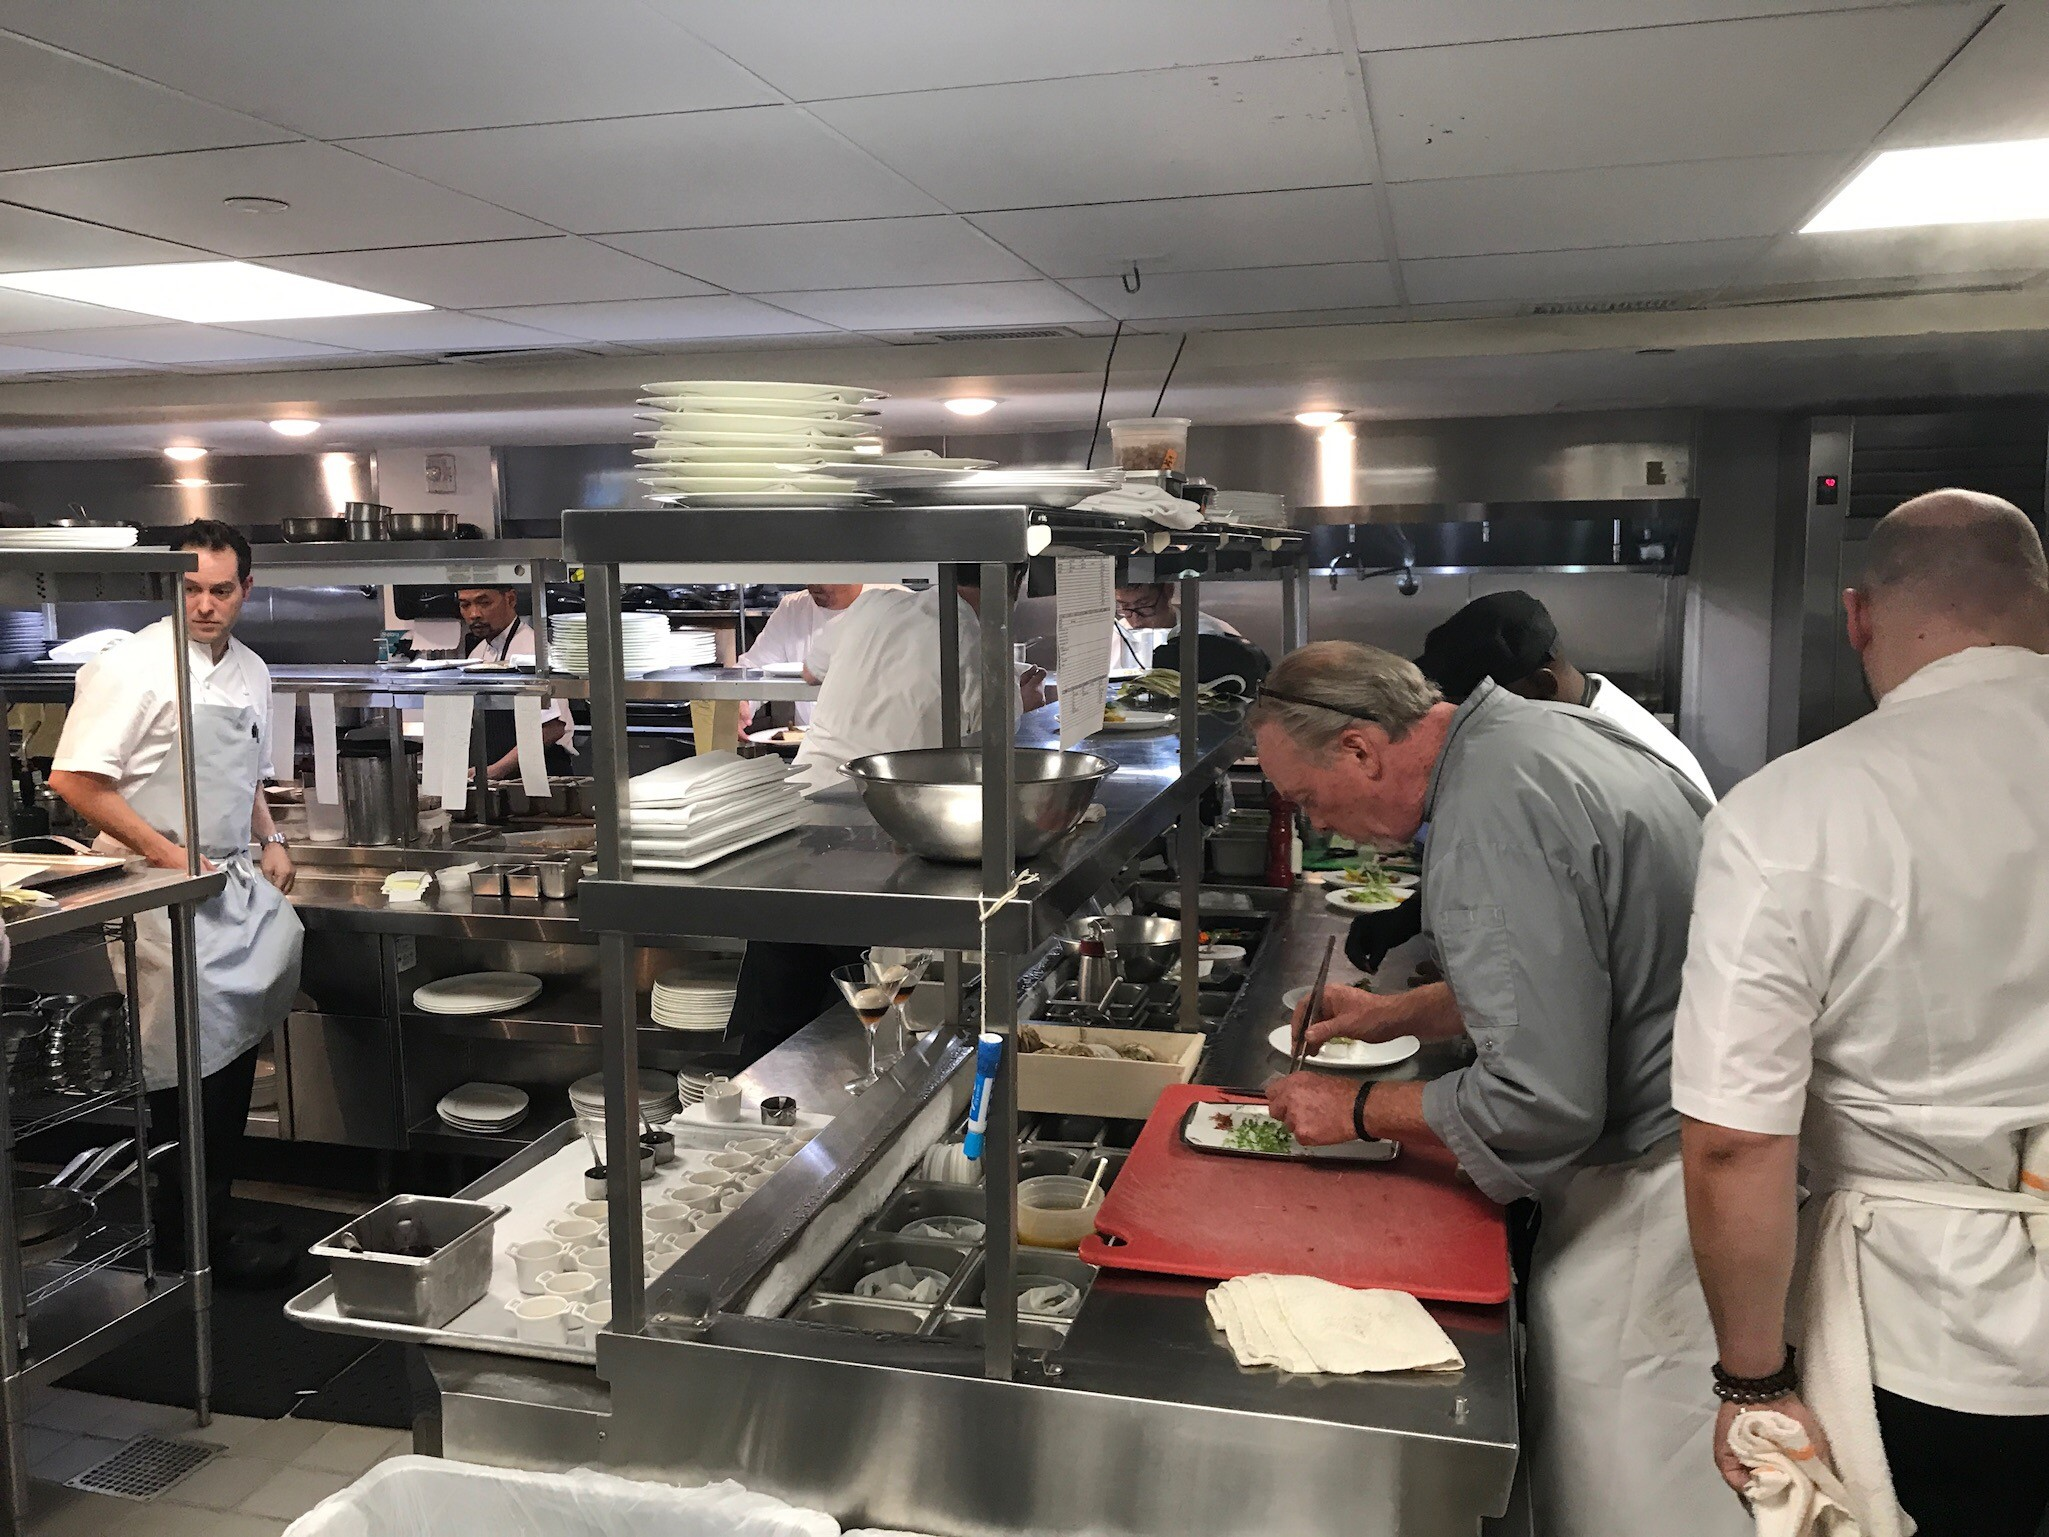 Chefs Michael Santoro and Brian McBride prepping for the evening in the kitchen at Kingbird. (Image: Courtesy The Watergate Hotel)